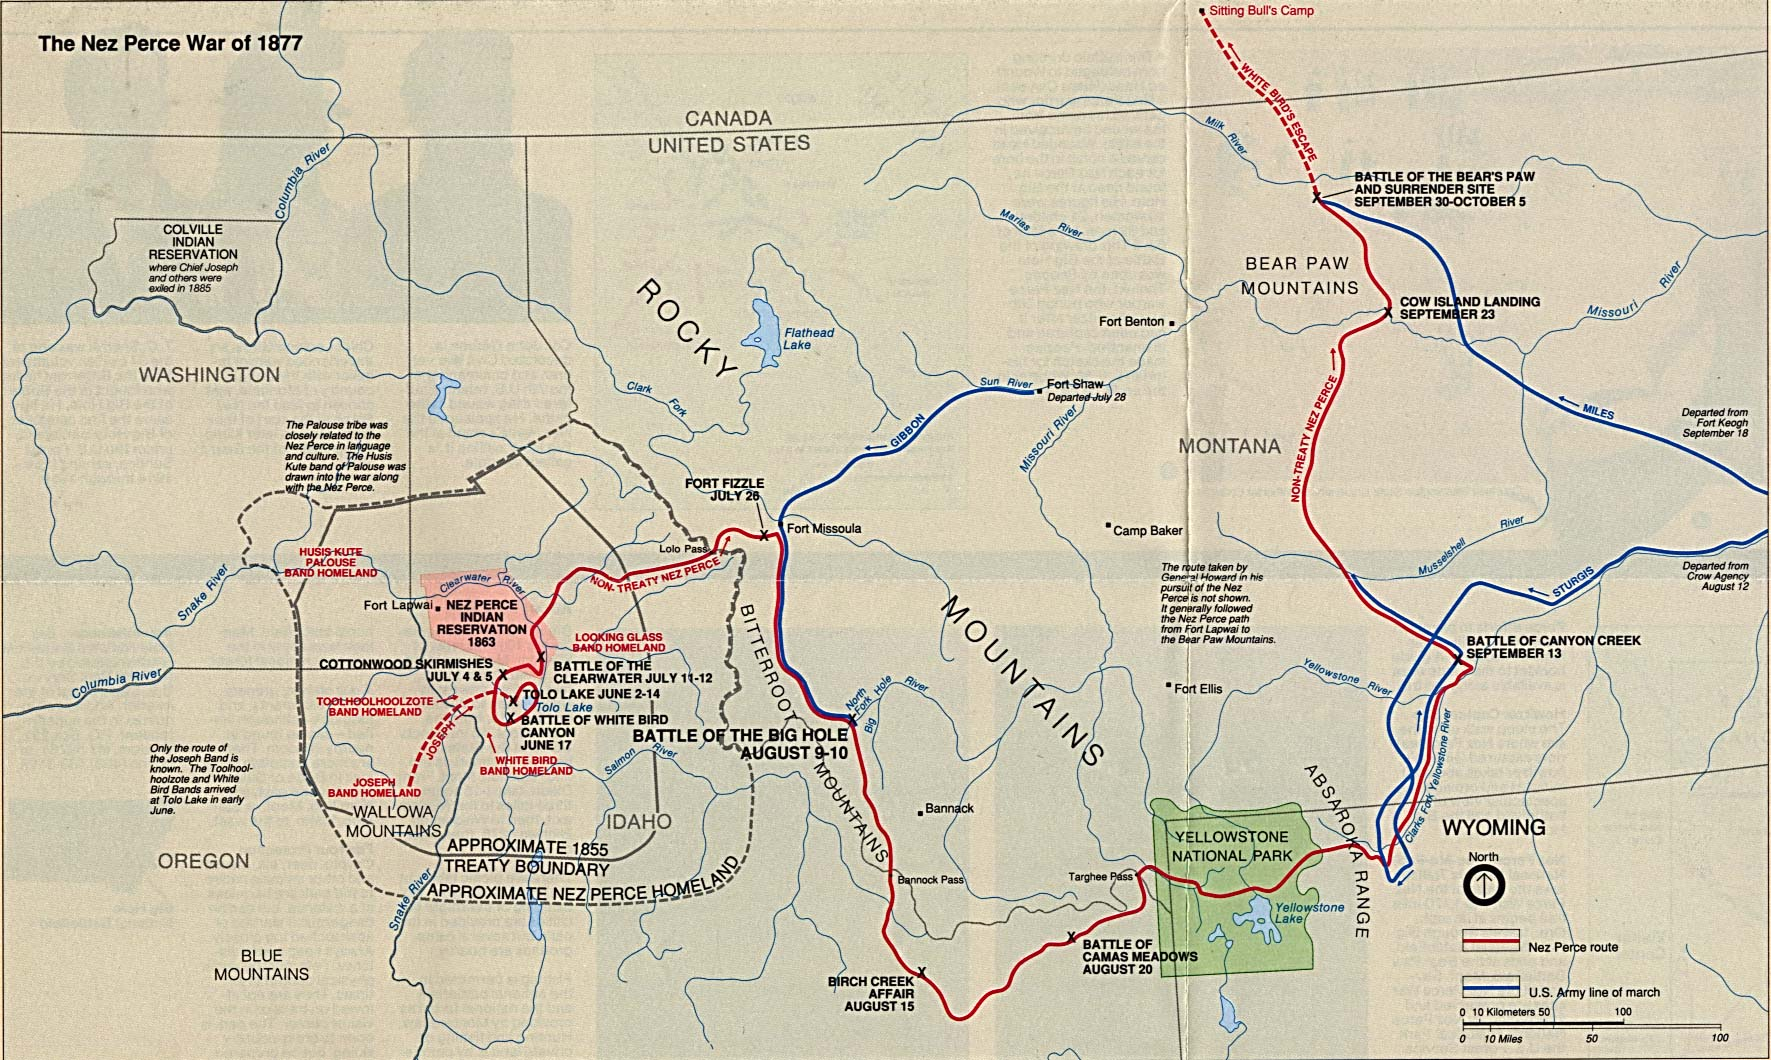 sunriver map with File Nez Perce War Battle Map 1877 on Map 11 additionally 29770 in addition 1863 as well File Nez Perce War battle map 1877 also Sun River Loop.